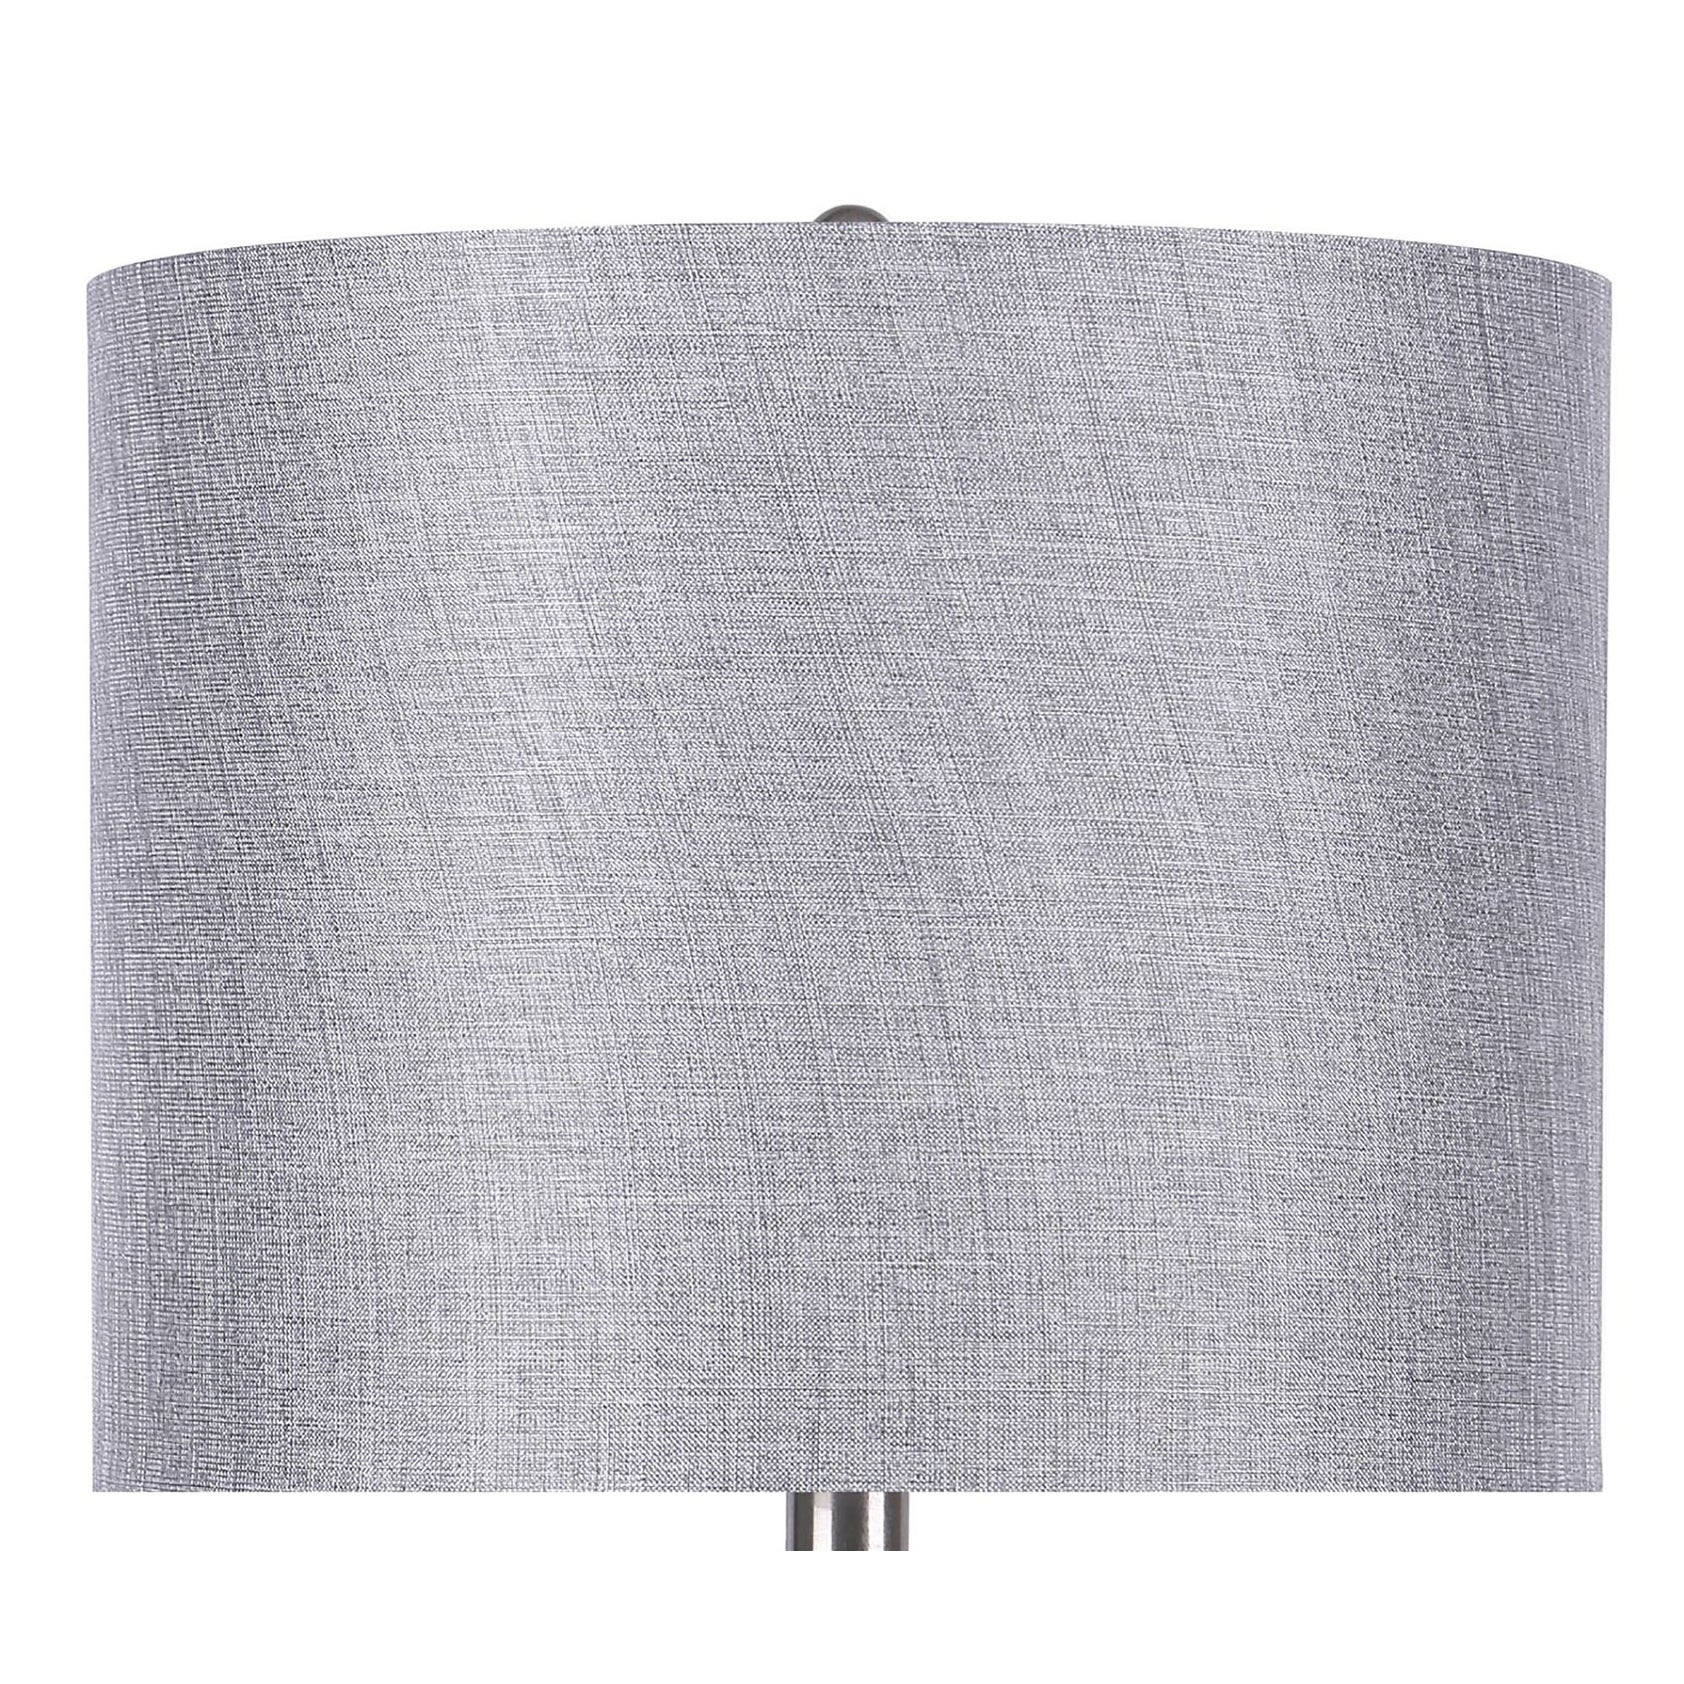 Porch Den Bakkom Brushed Nickel 24 25 Inch Table Lamp Set On Sale Overstock 30697025